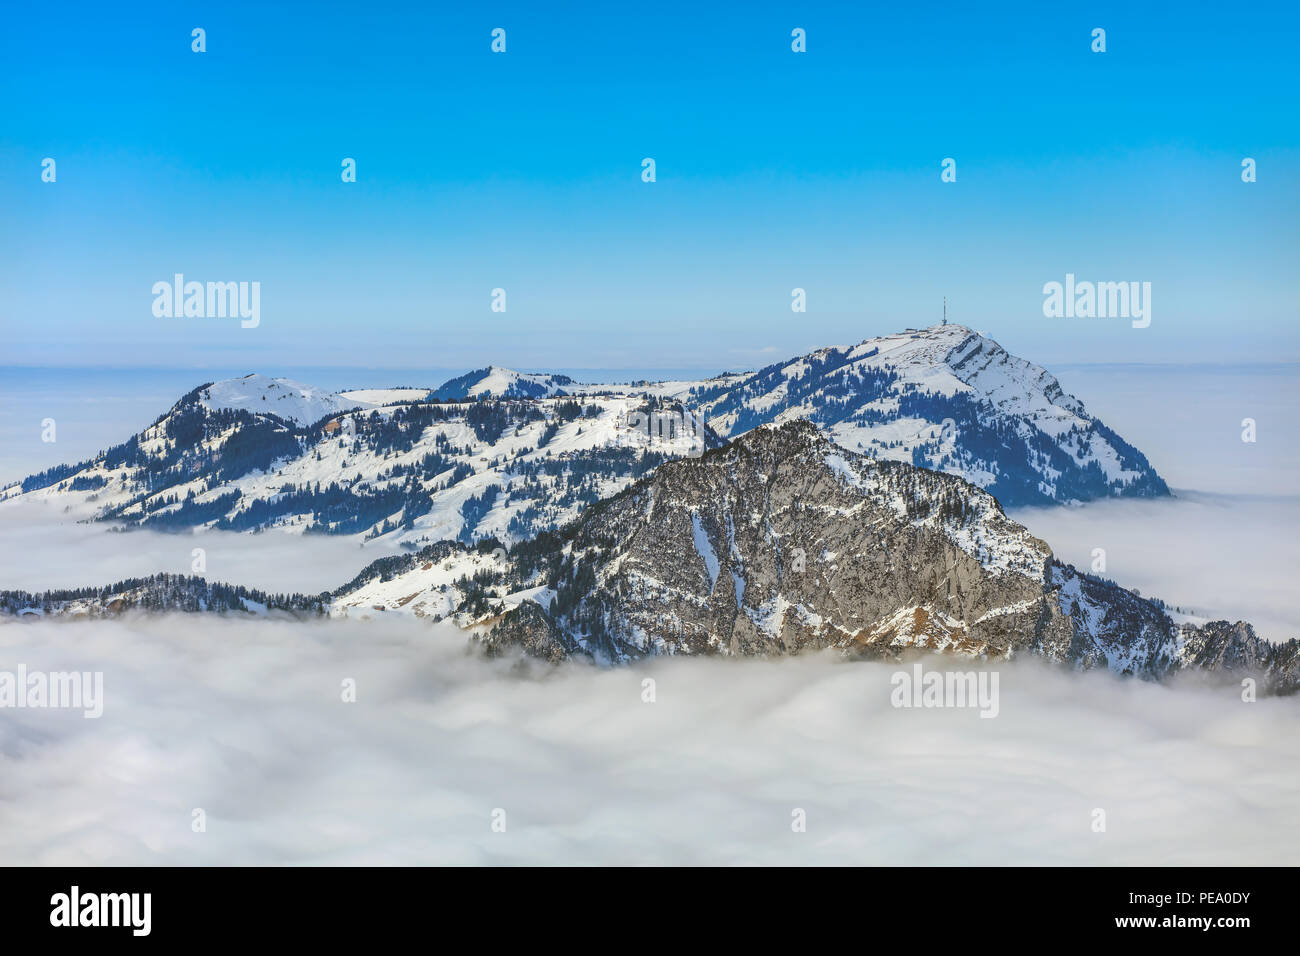 Summits of the Swiss Alps rising from sea of fog, the furthermost one is well-known Mt. Rigi - a wintertime view from Fronalpstock mountain in the Swi - Stock Image